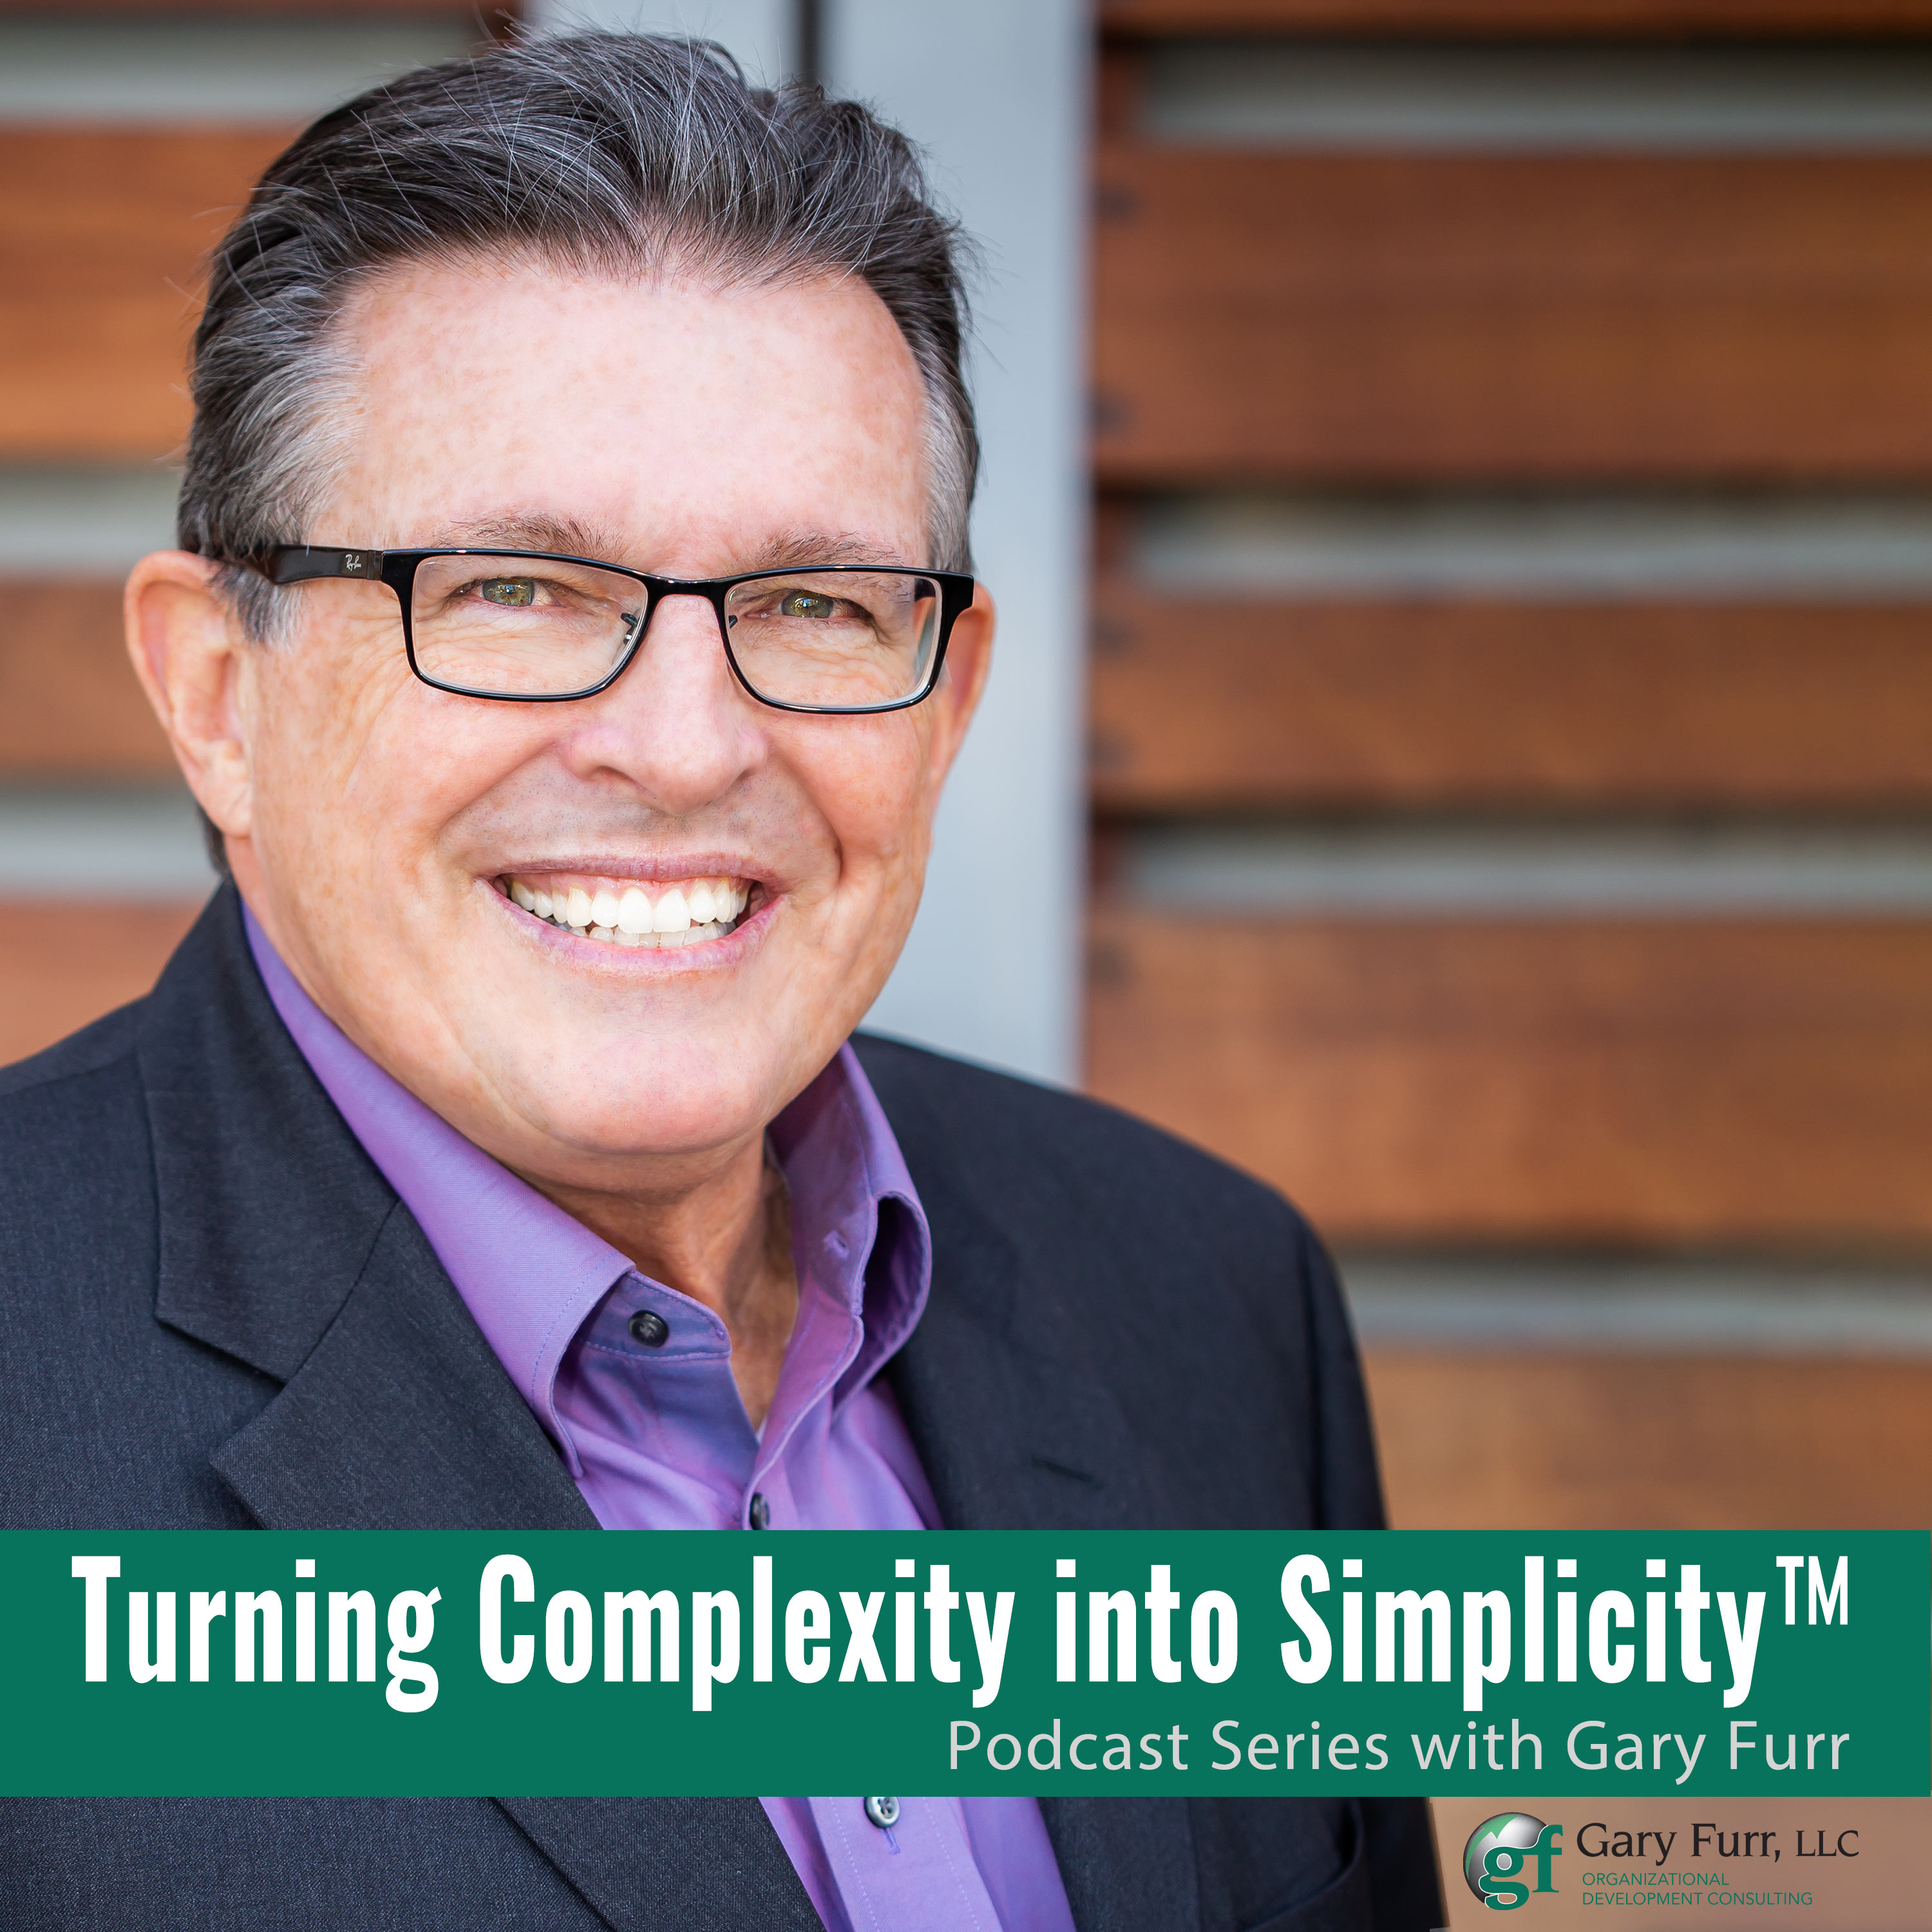 Turning Complexity into Simplicity™